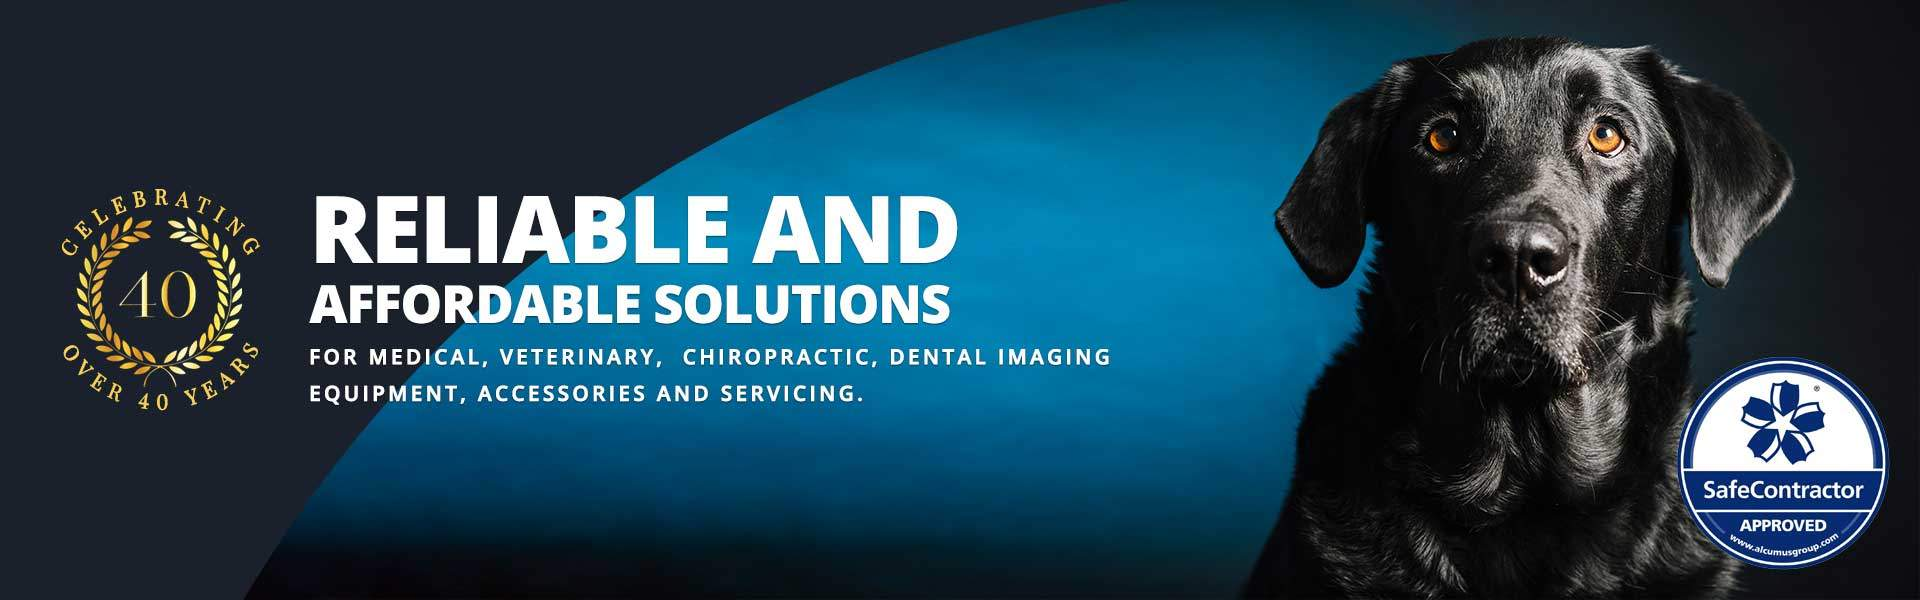 Reliable & Affordable Imaging Solutions